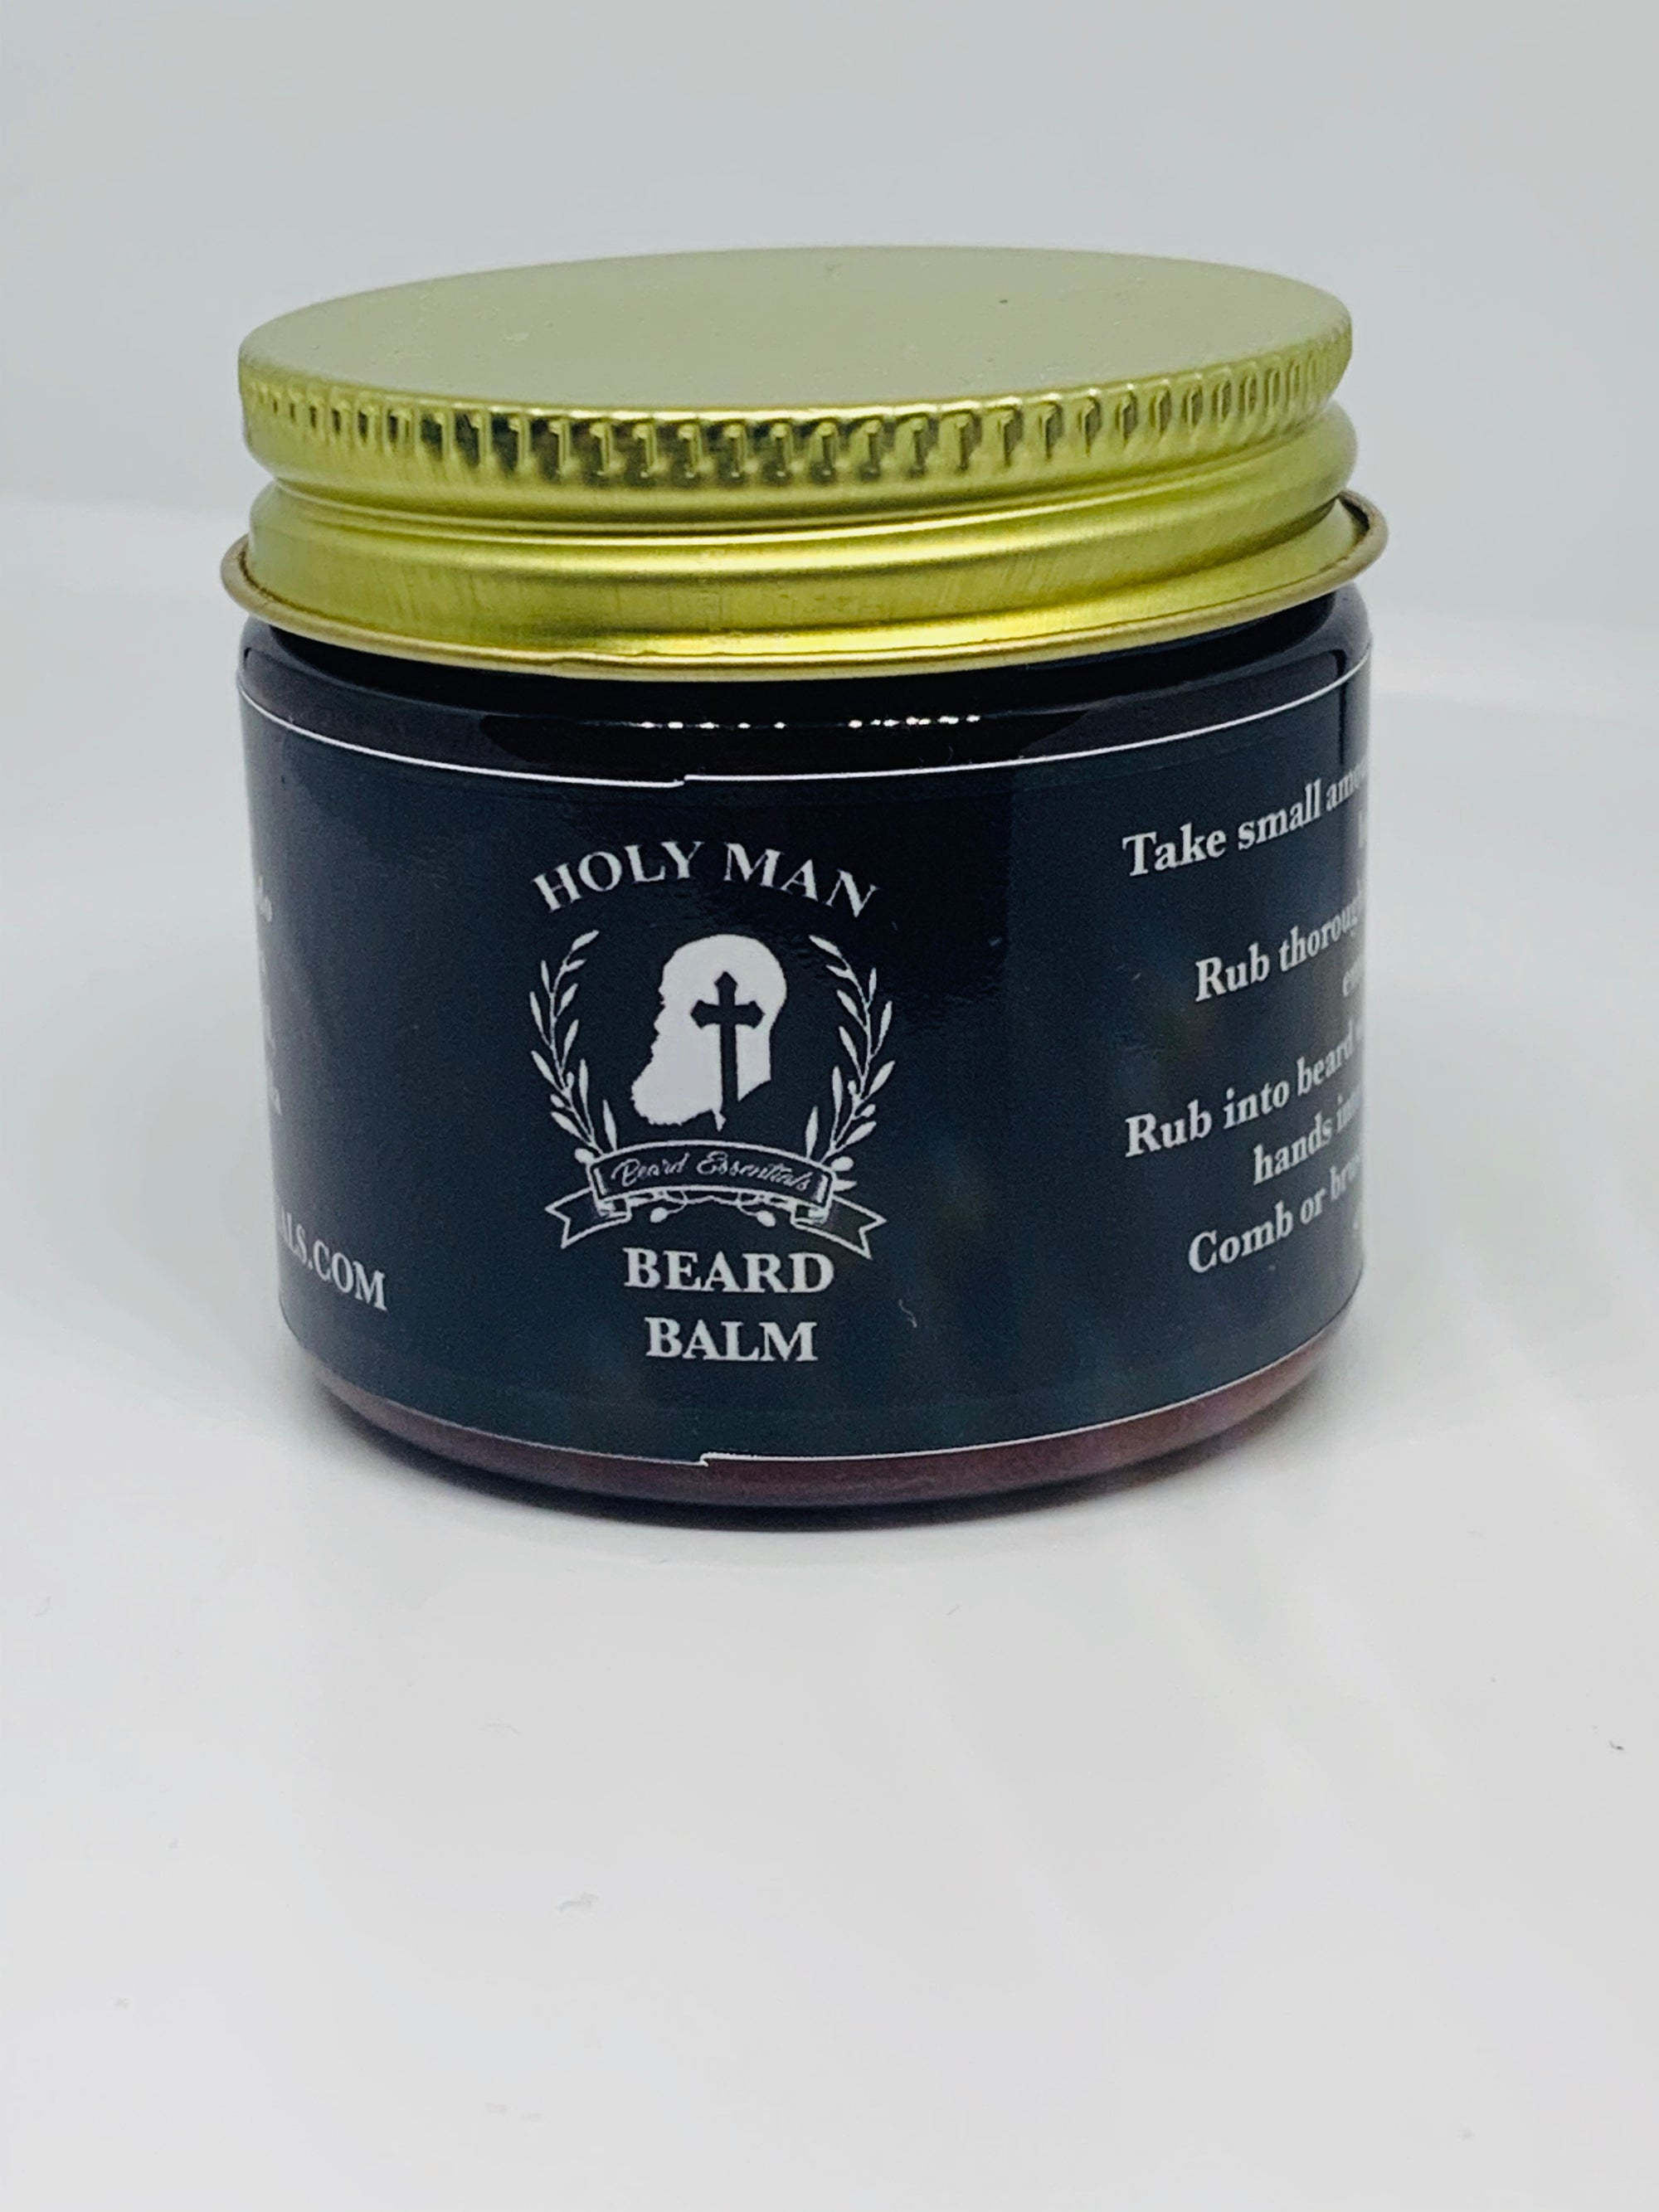 HOLY MAN BEARD Beard Balm - Holy Man Beard Essentials  facial hair, beard care, beard oil, beard products, skin care